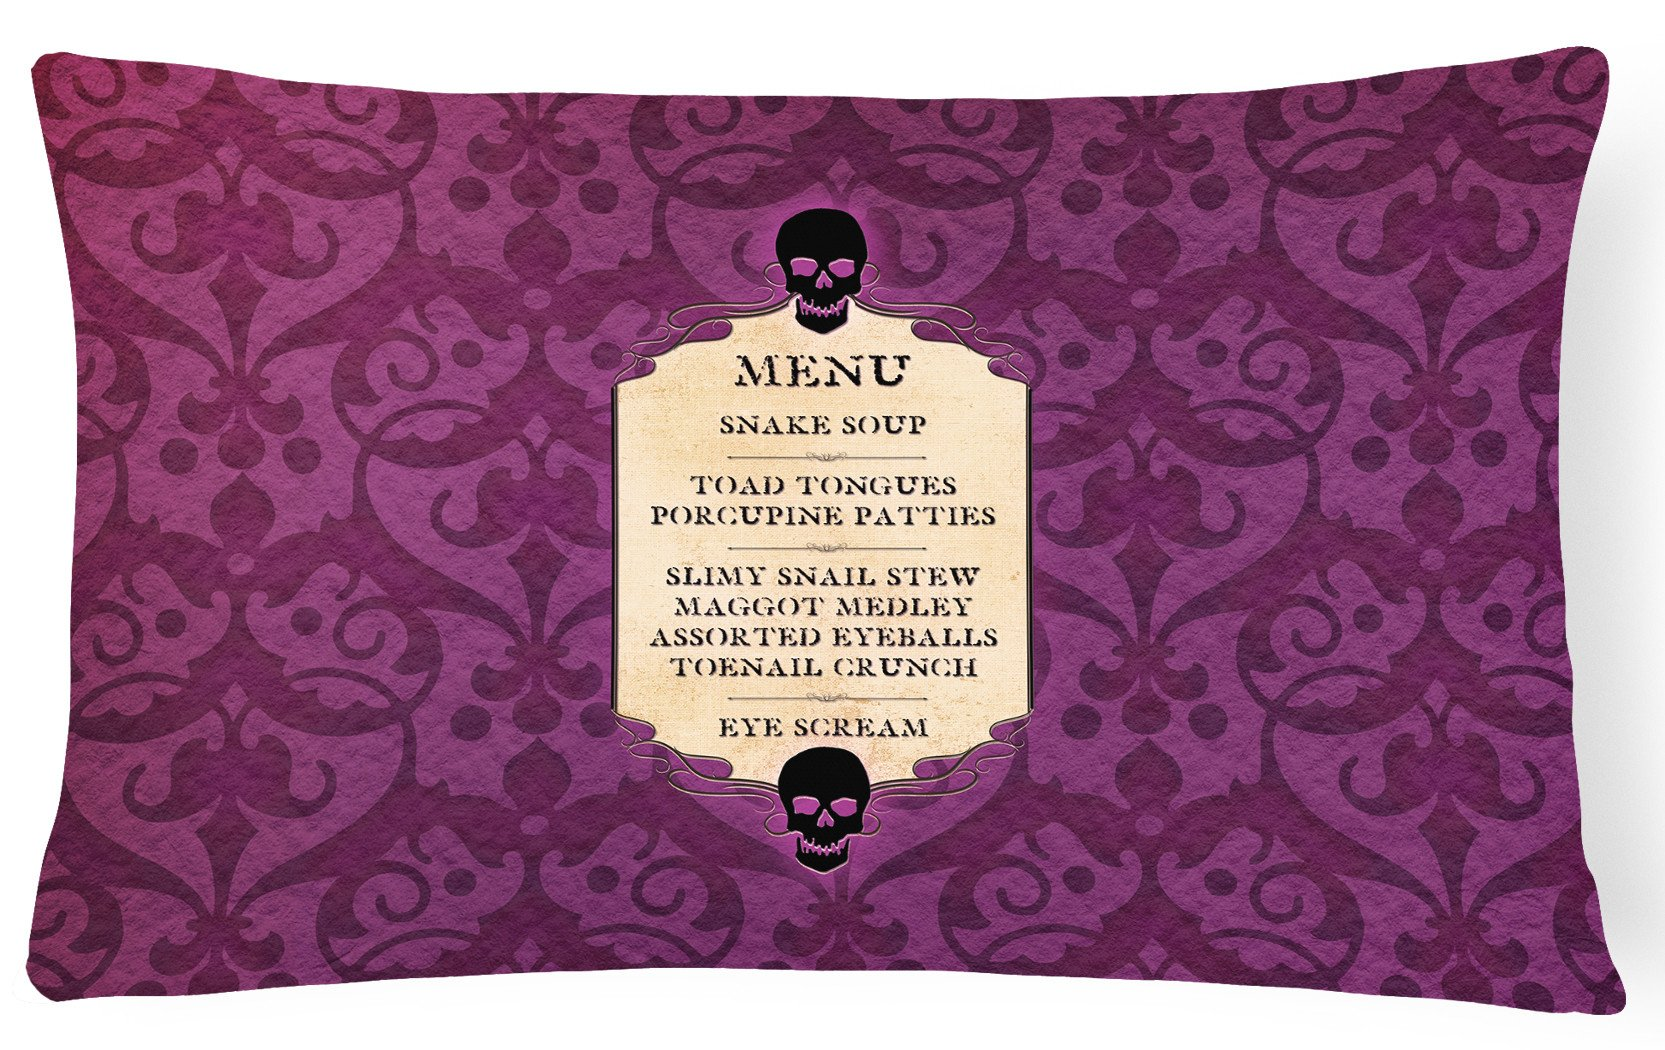 Goulish Menu including Eye Screen Snake soup Halloween   Canvas Fabric Decorative Pillow by Caroline's Treasures